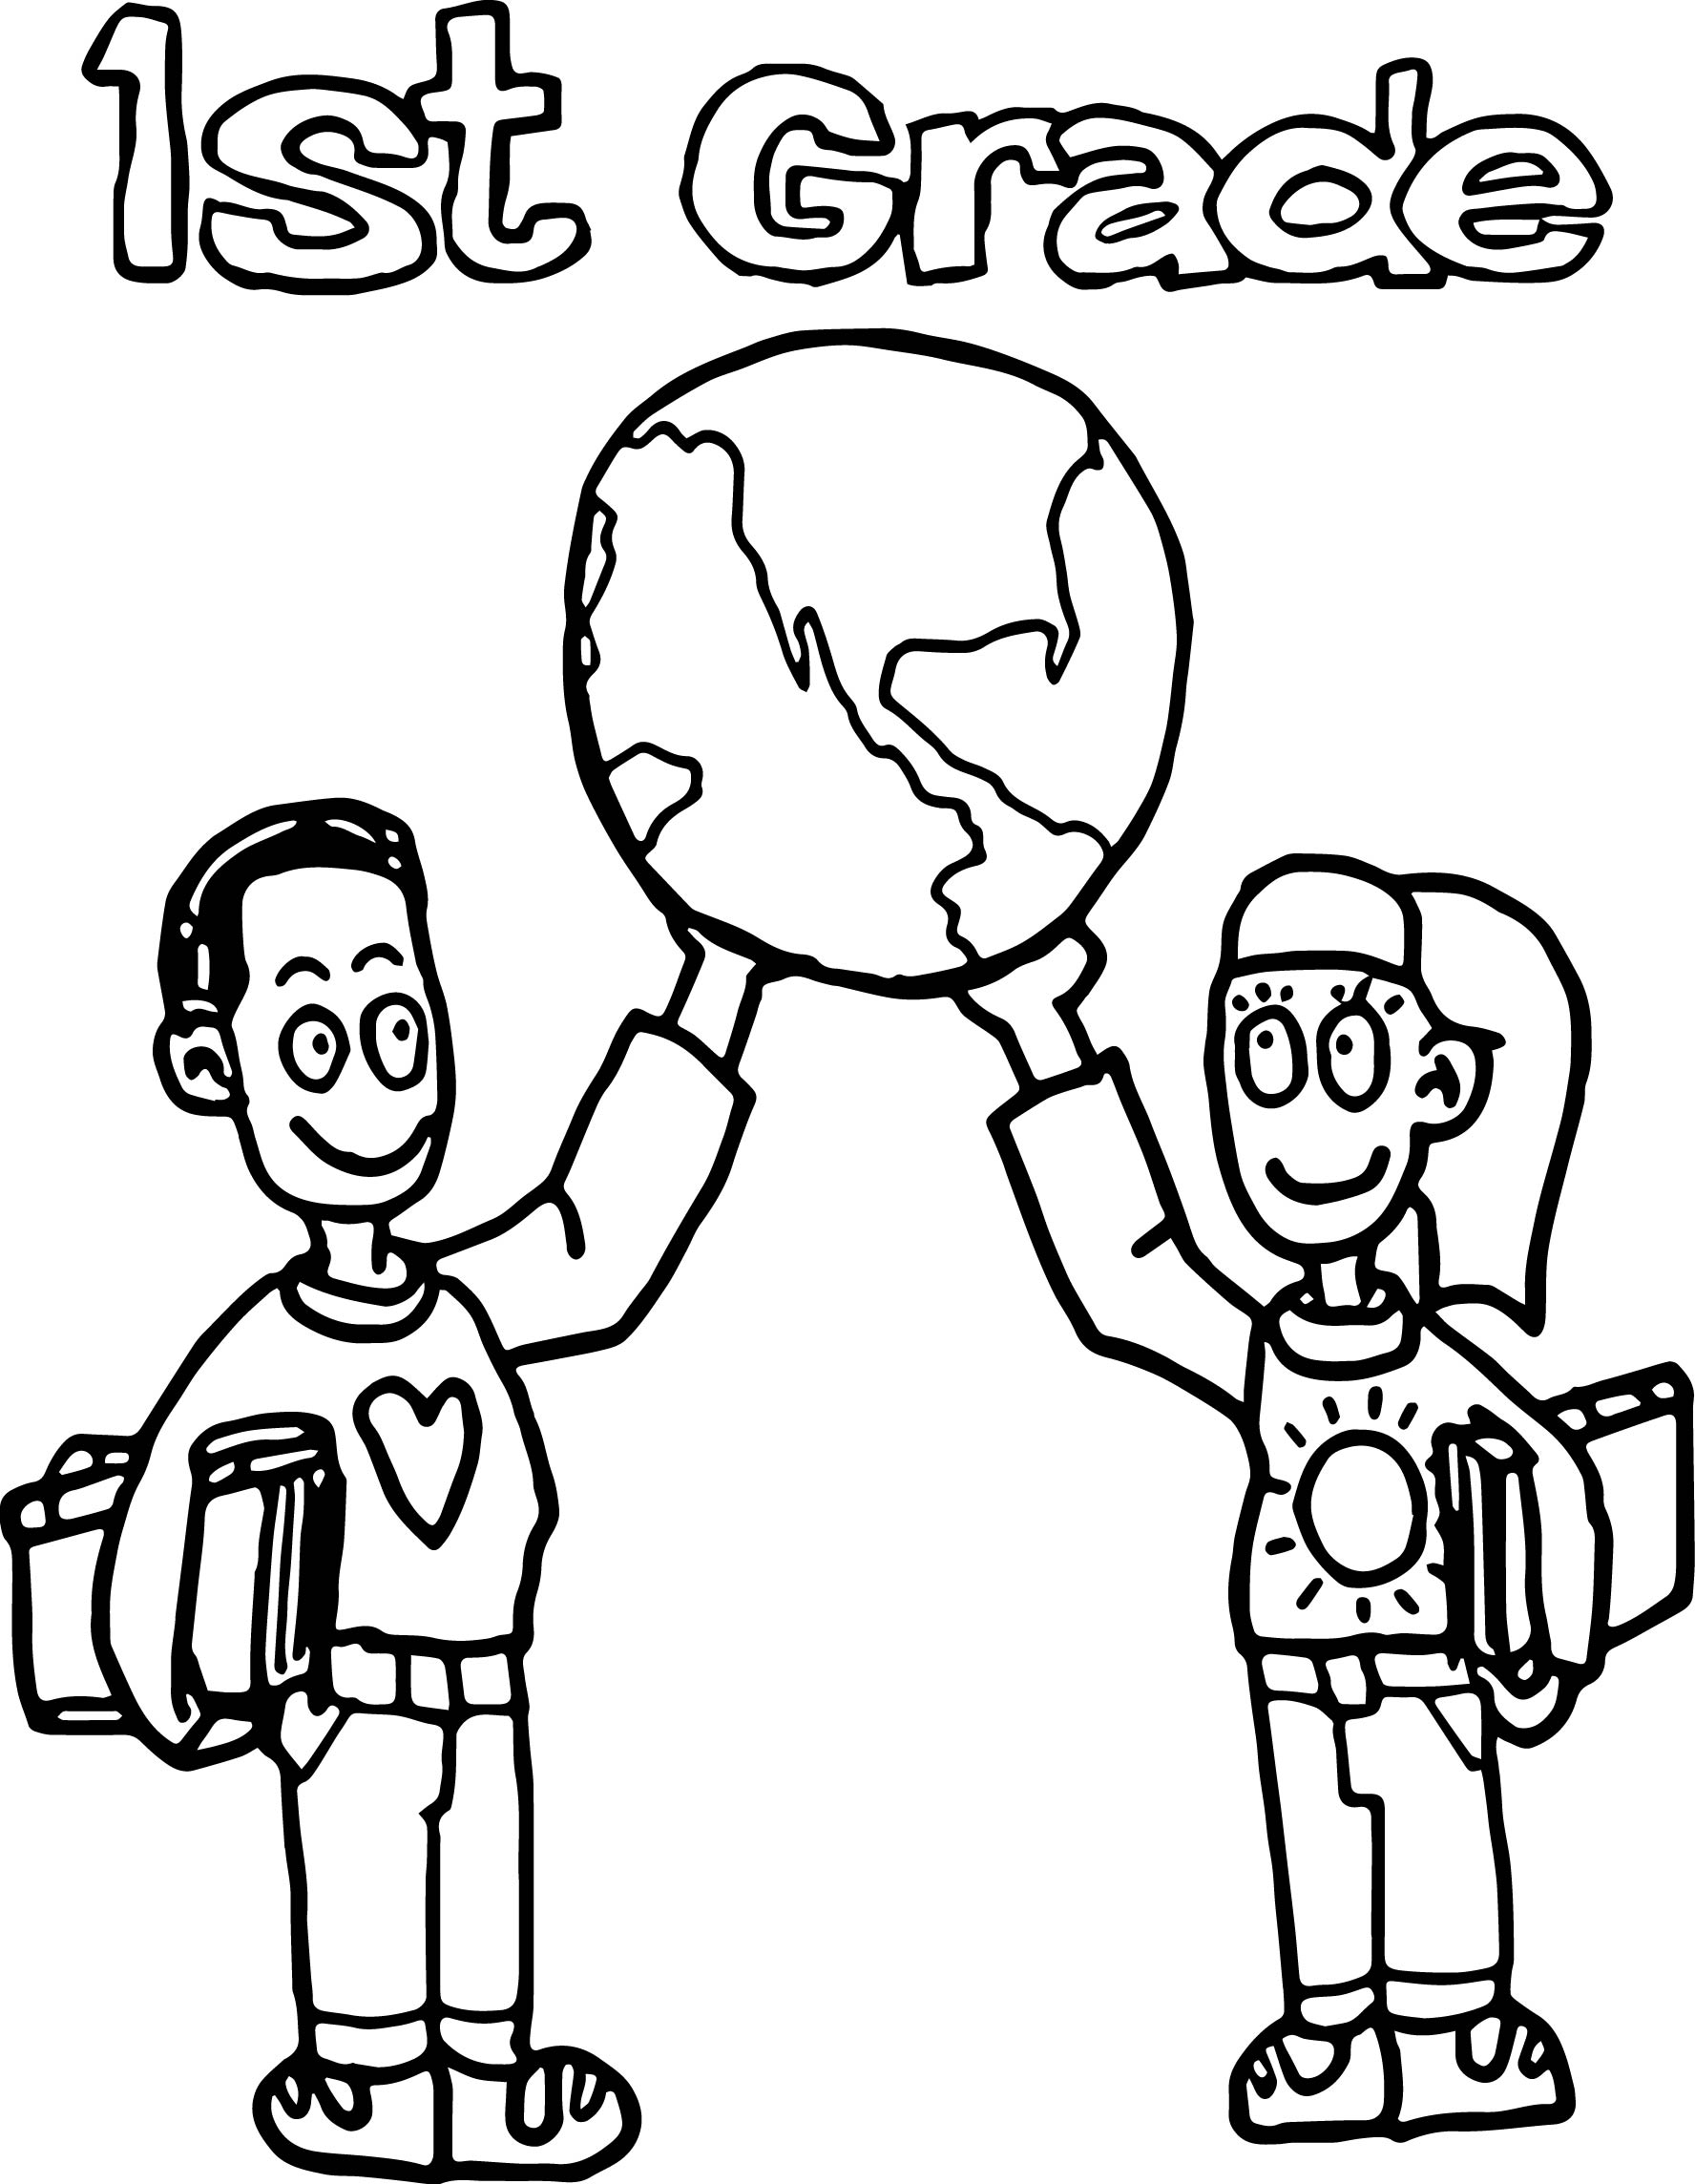 1st Grade School World Coloring Page